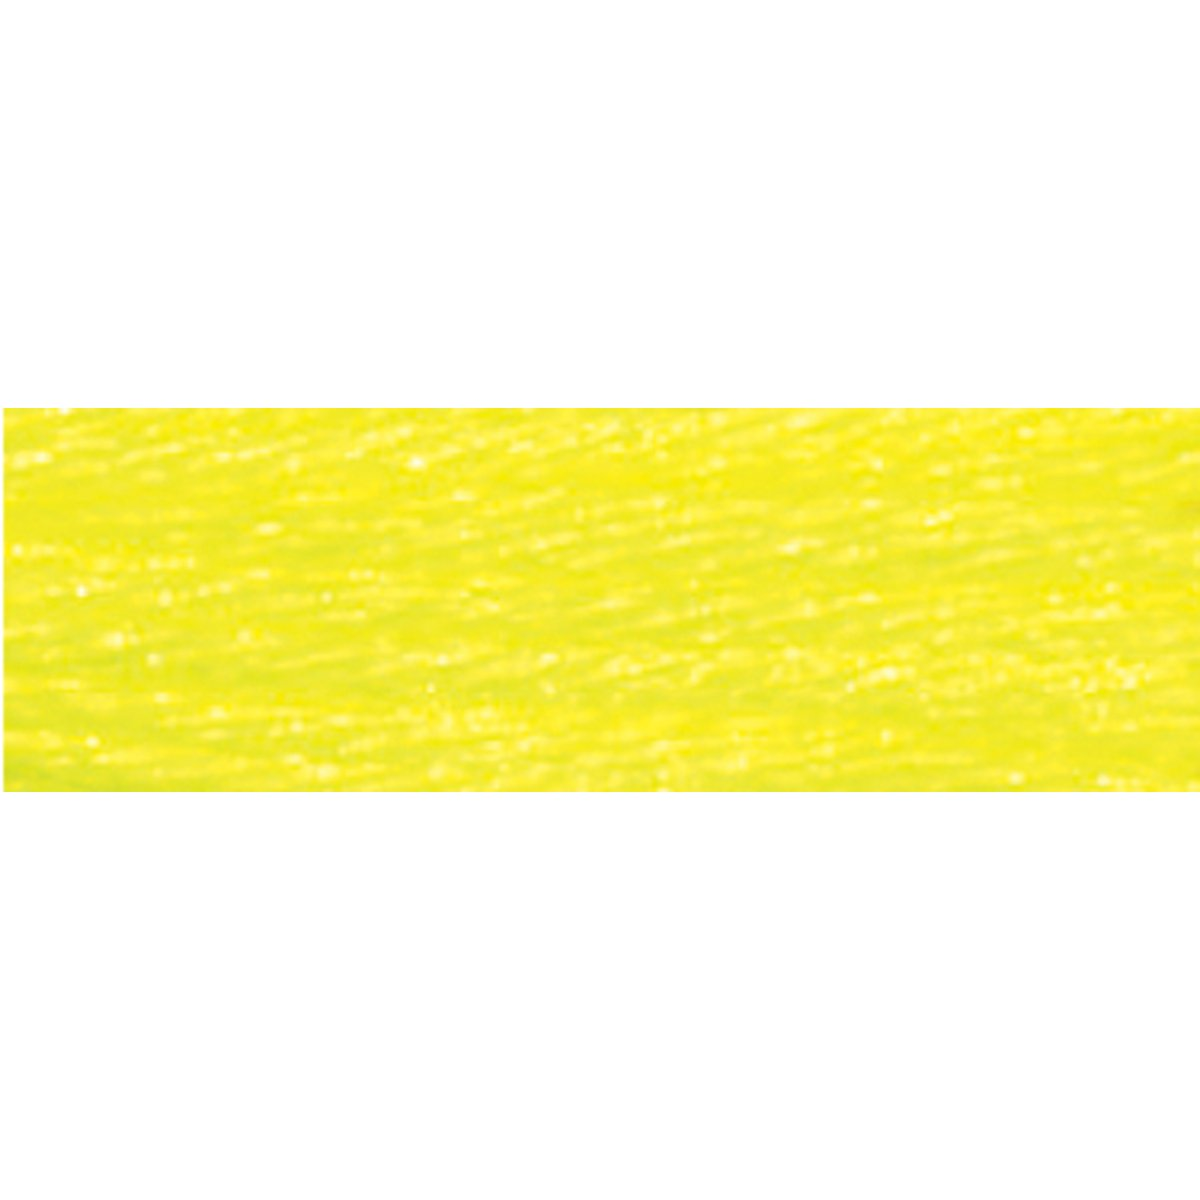 DMC 317W-E334 Light Effects Polyster Embroidery Floss, 8.7-Yard, Blue Topaz Notions - In Network